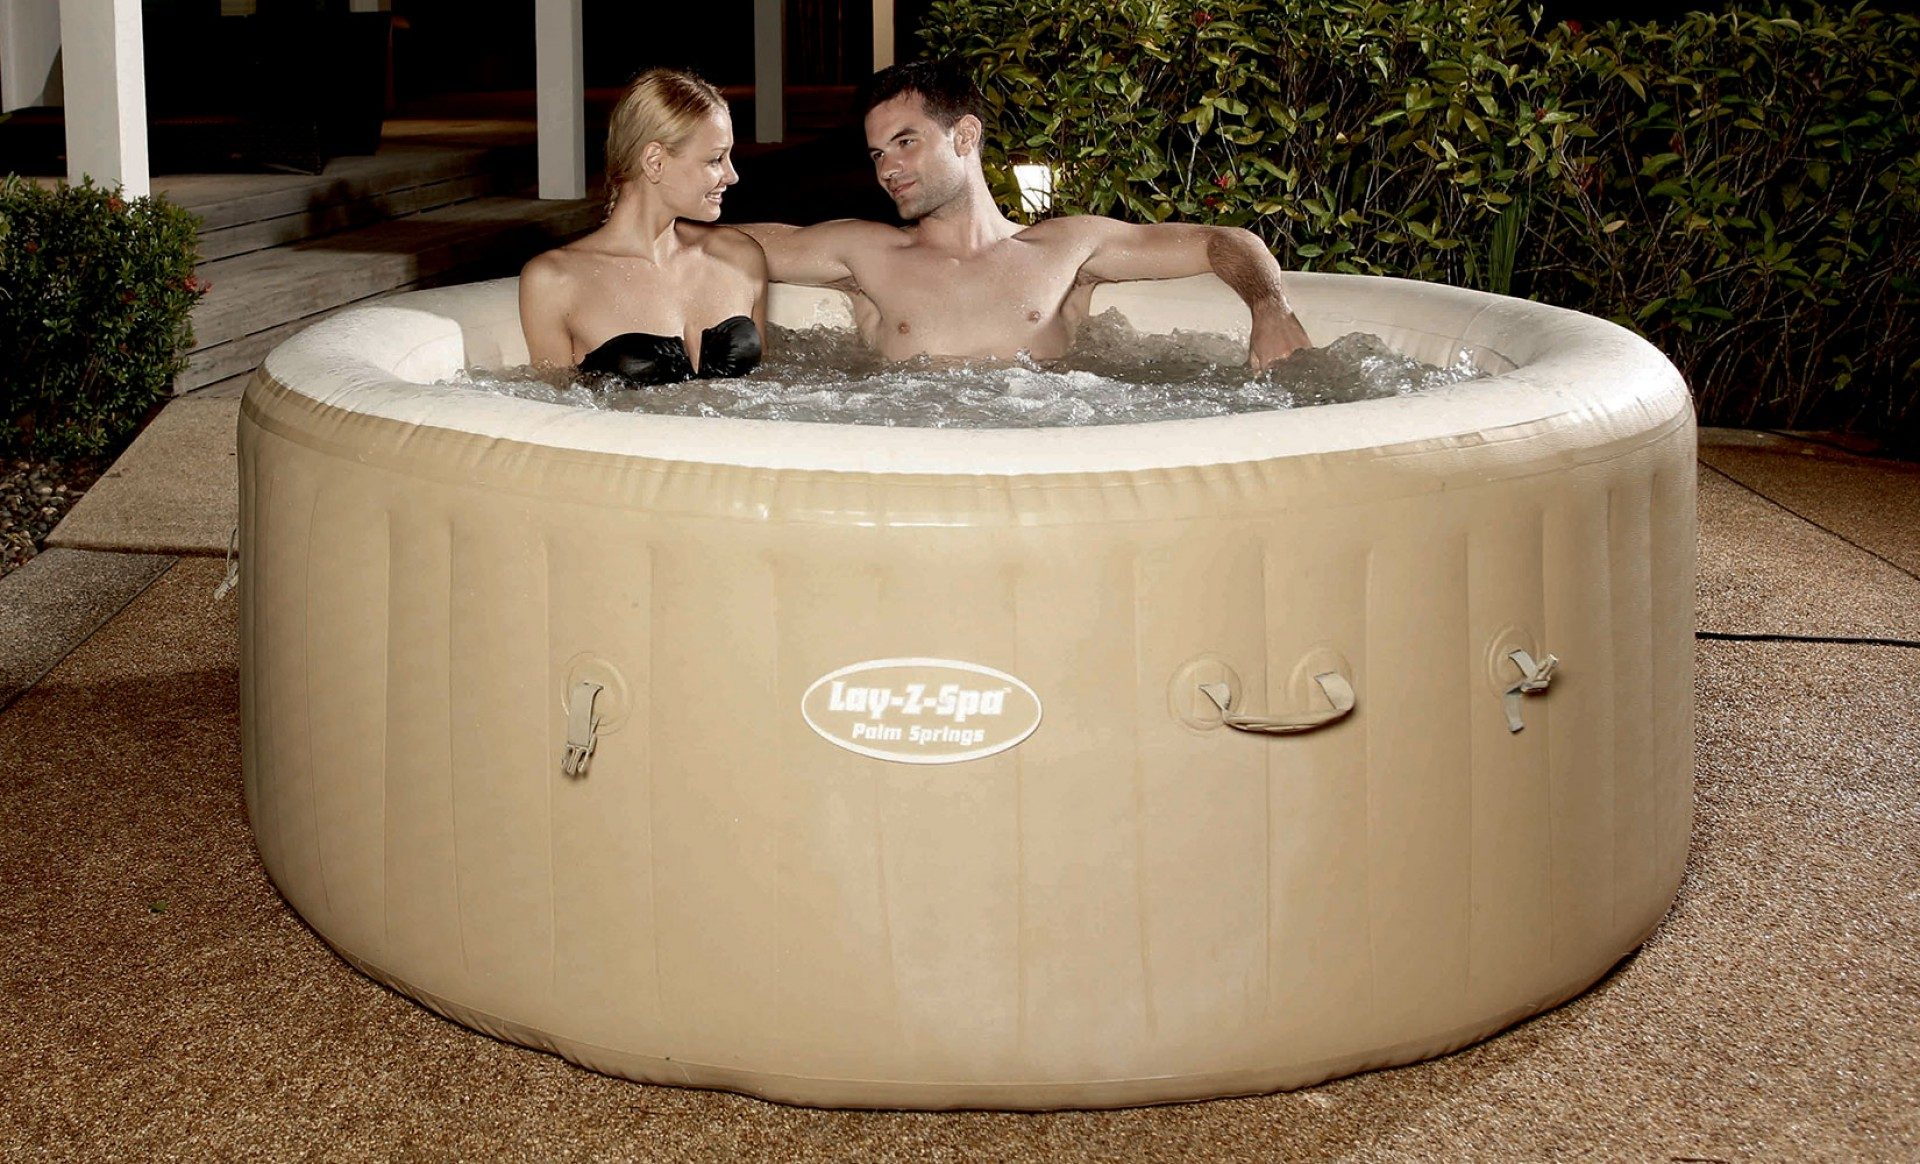 Lay-Z-Spa AirJet Palm Springs Jacuzzi